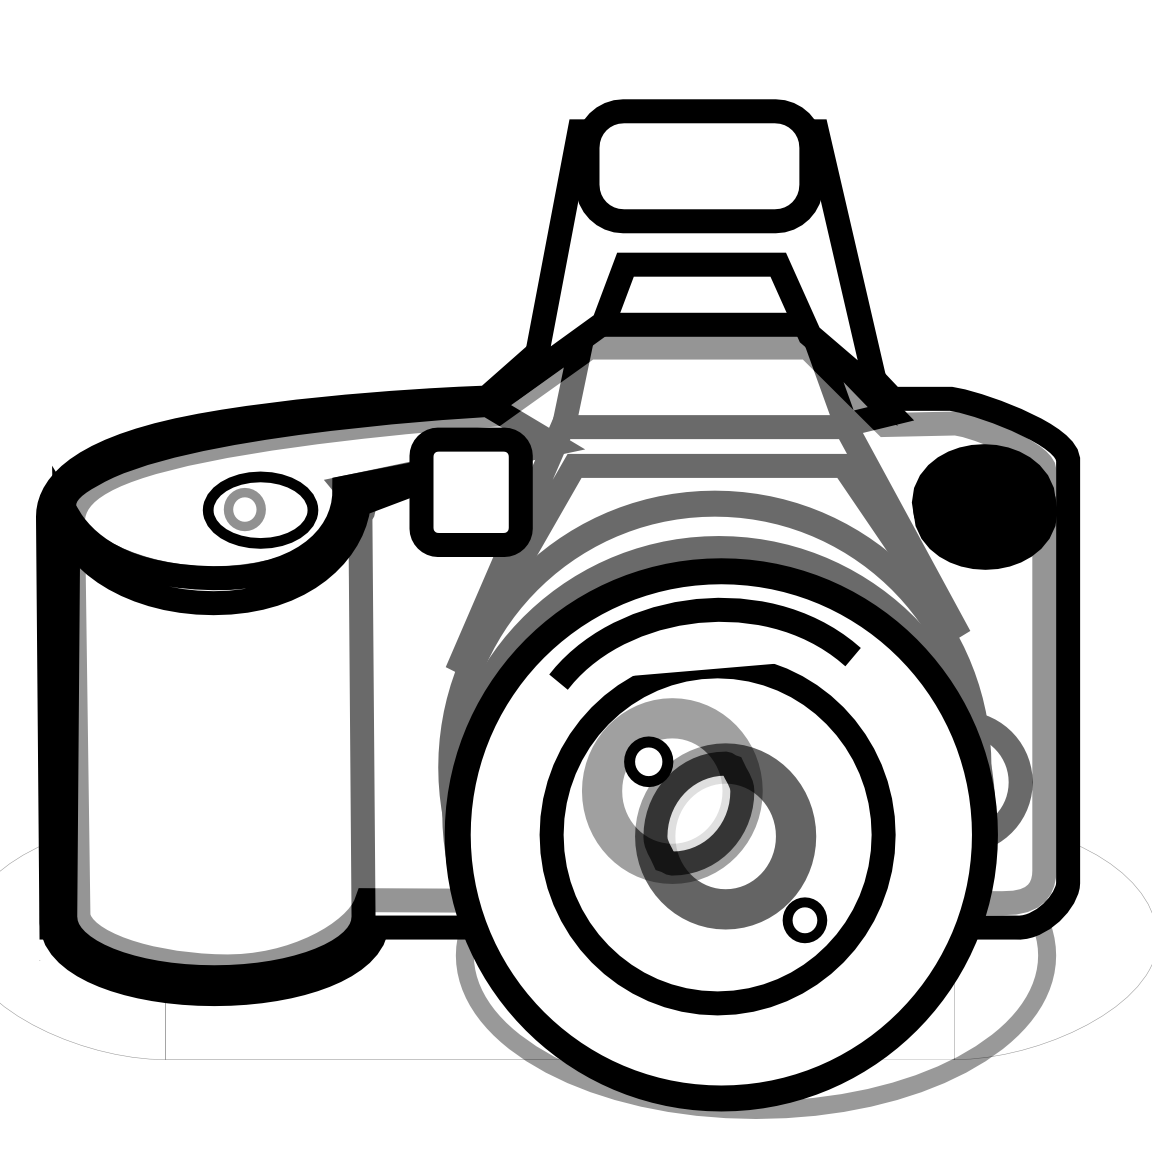 Camera Clipart Black And White Png | Clipart Panda - Free ...